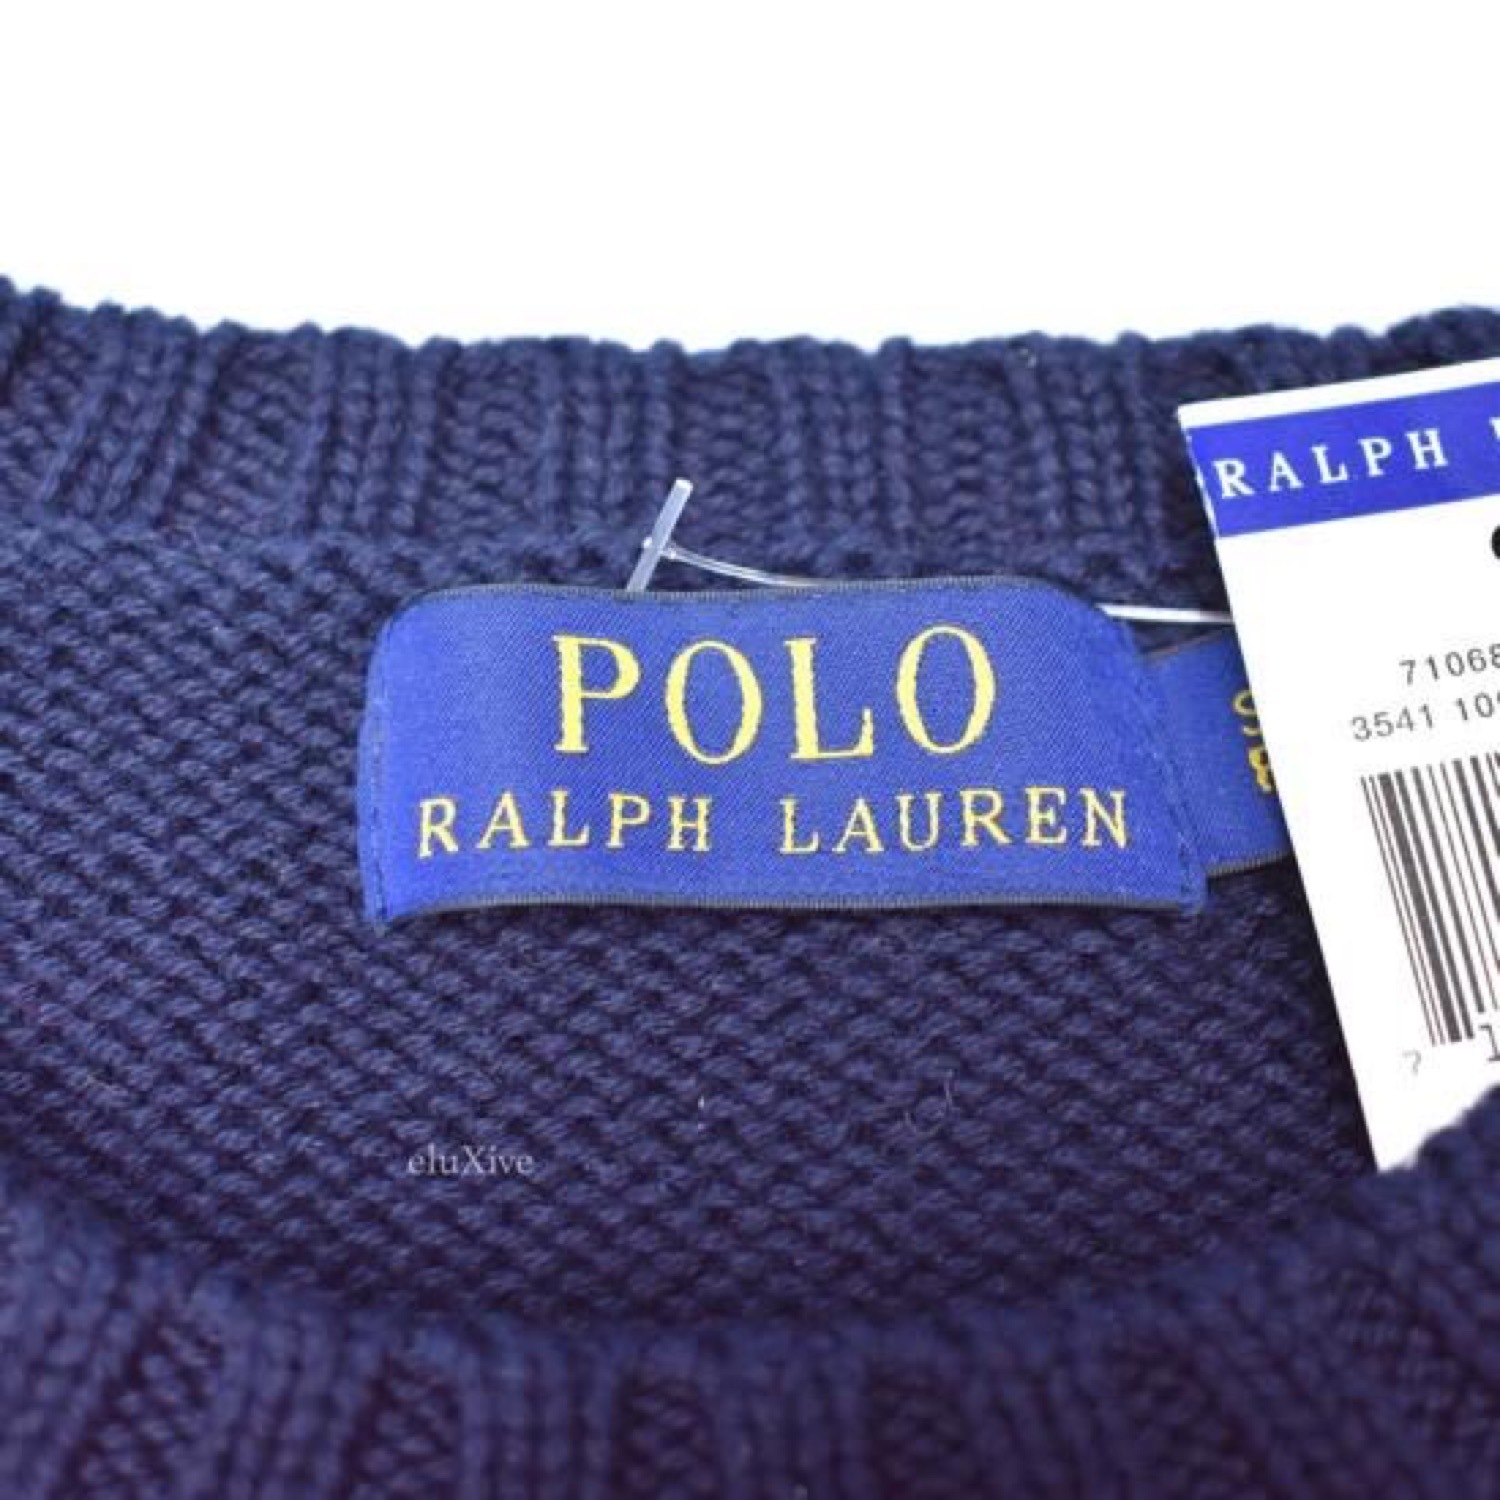 Flag Ralph Knit Polo Intarsia Sweater Lauren W9ID2HE